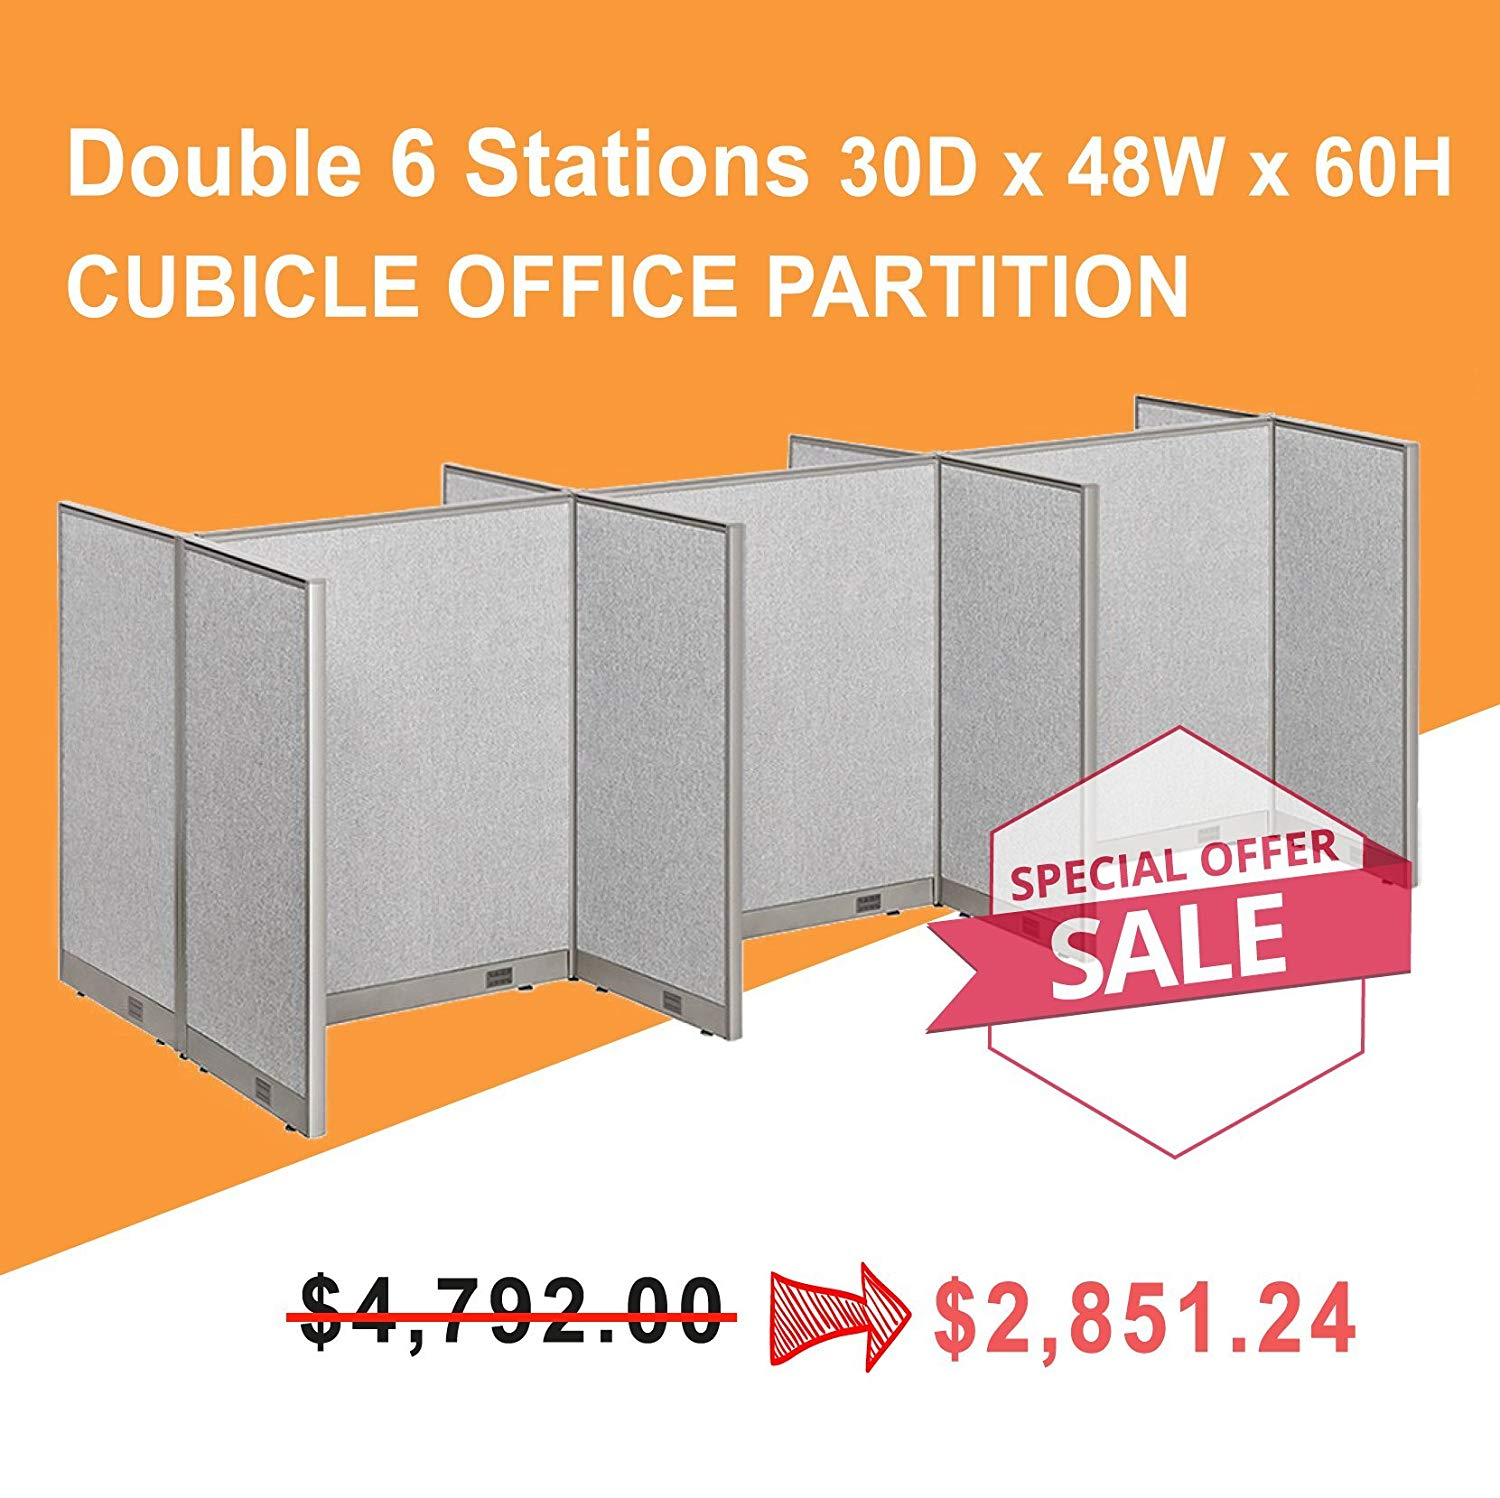 [Limited Time Special] GOF Call Center Cubicle, workstations 30D x 48W / Office Partition (5' x 12' (30D x 48W x 60H))